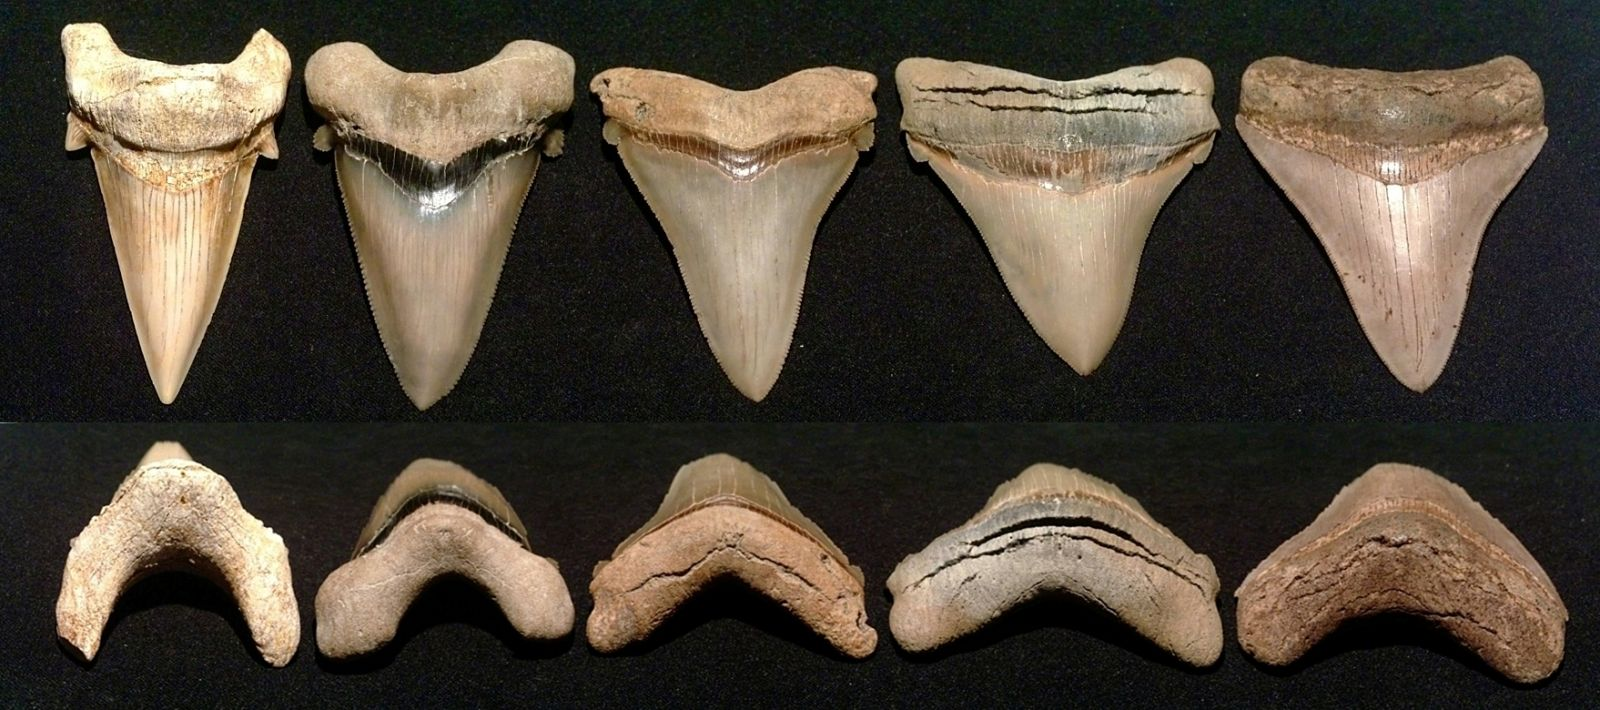 C. Megalodon Evolution - 3.4 to 3.5 inch Teeth examples.